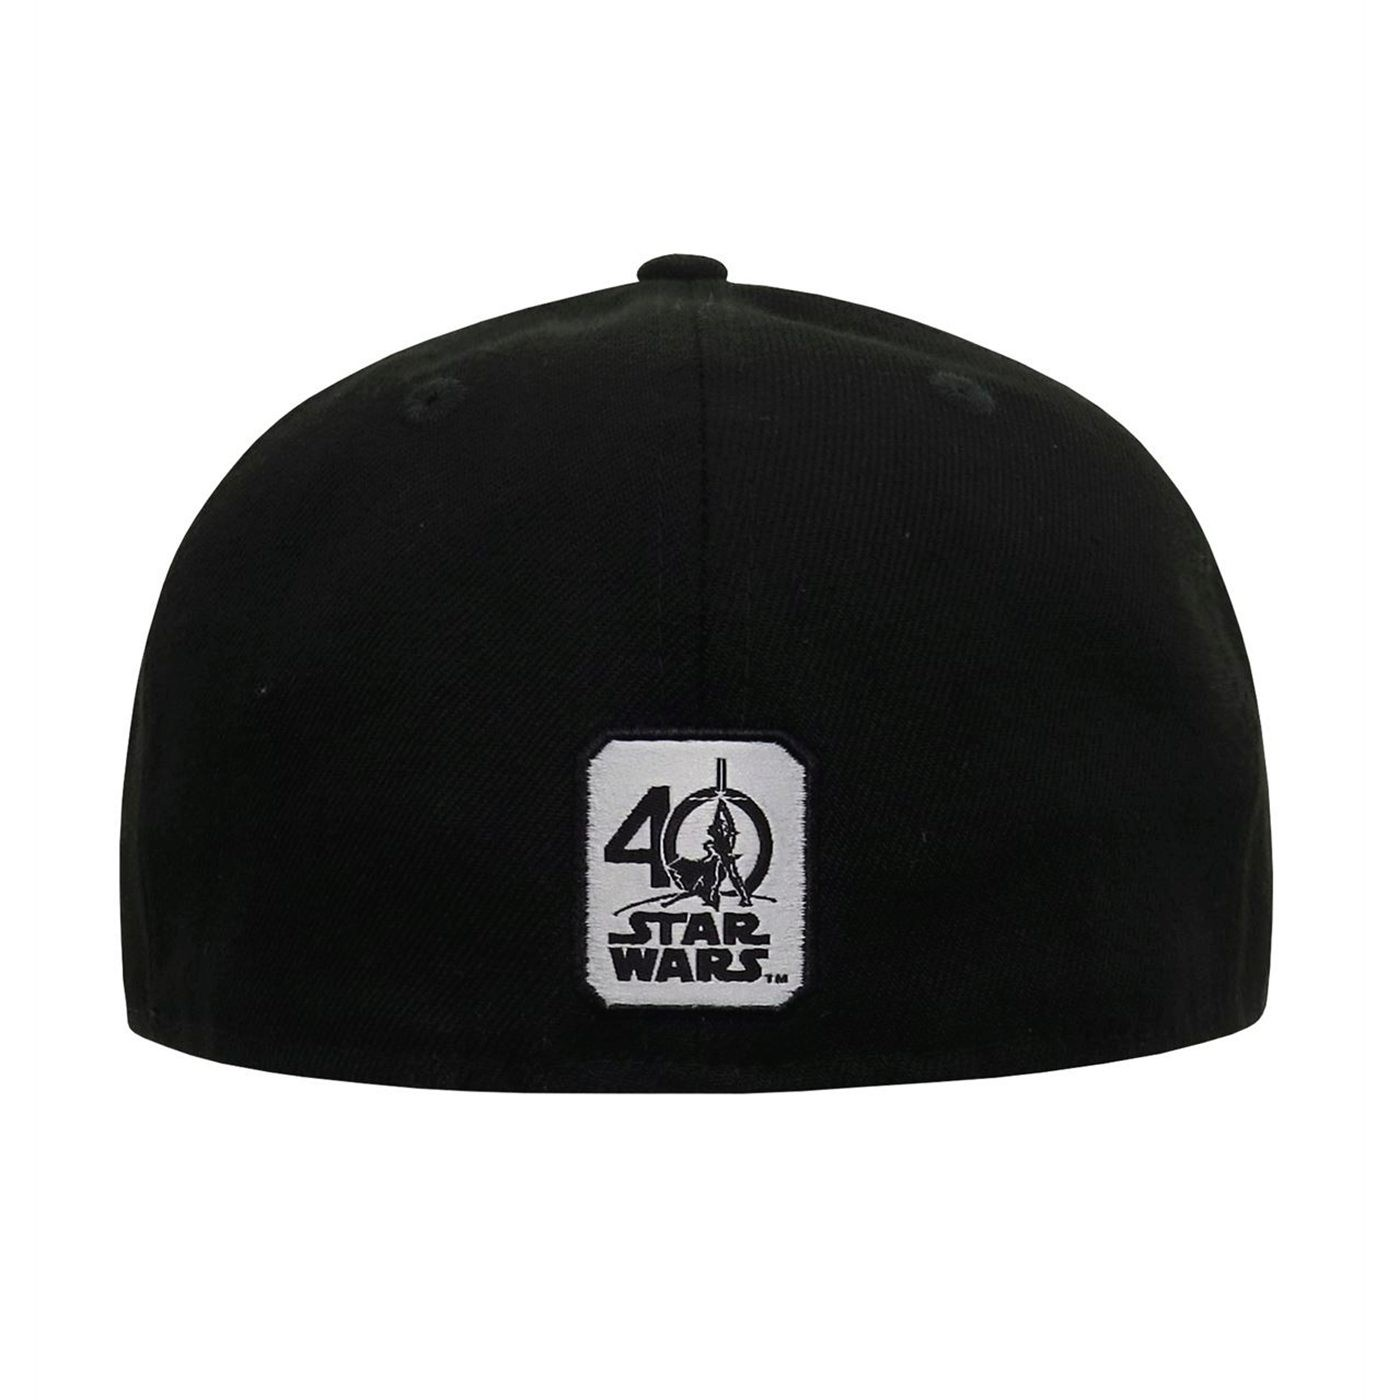 Star Wars 40th Darth Vader 59Fifty Fitted Hat